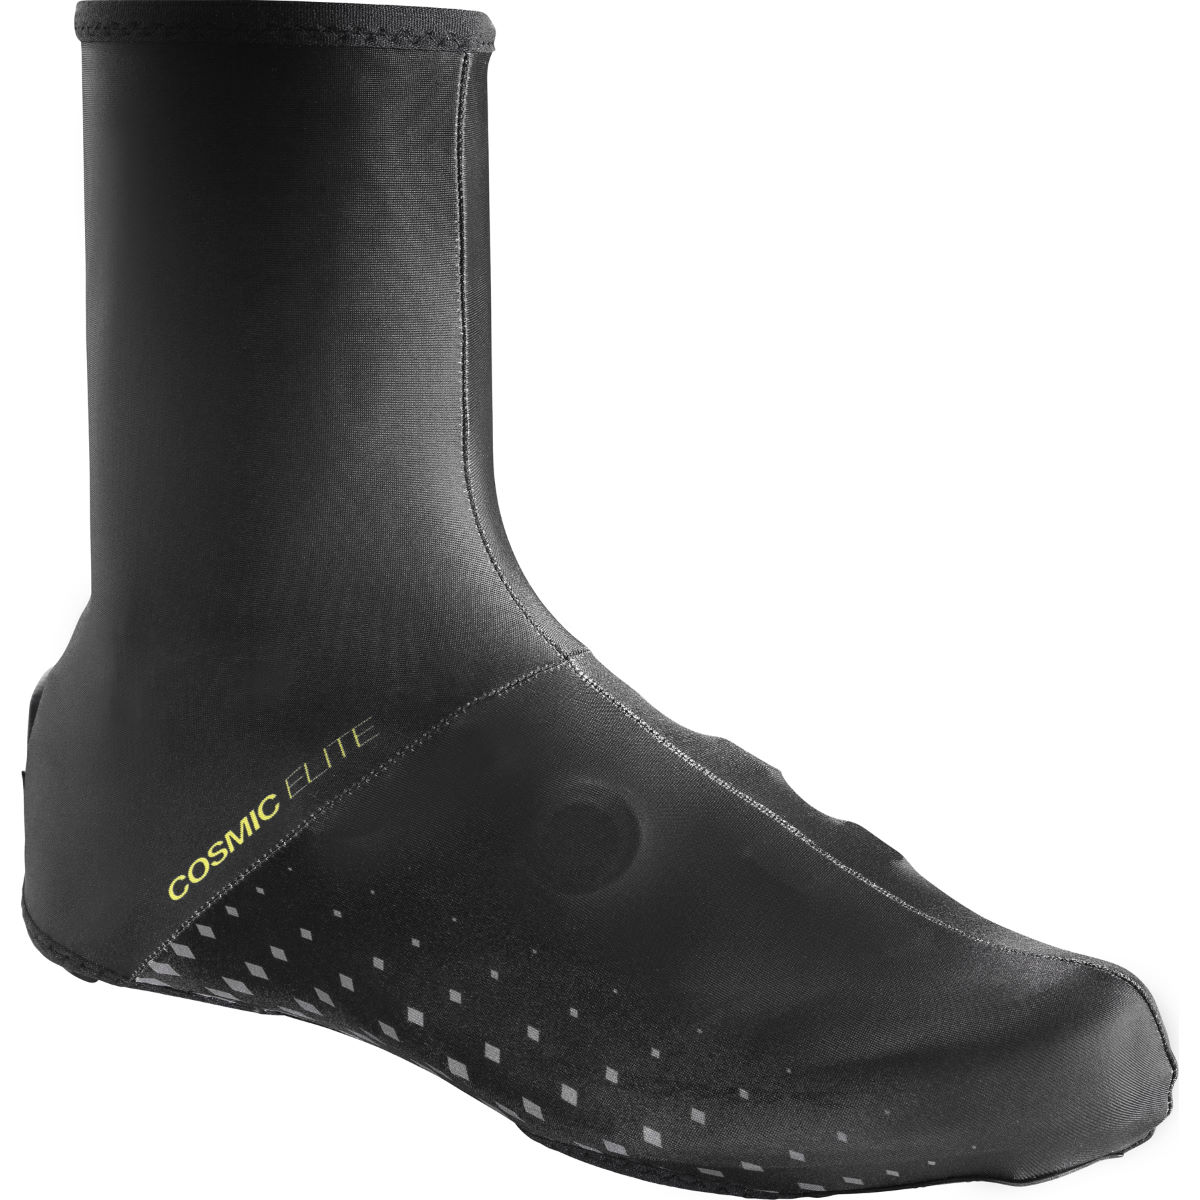 Couvre-chaussures Mavic Cosmic Elite - S Noir Couvre-chaussures